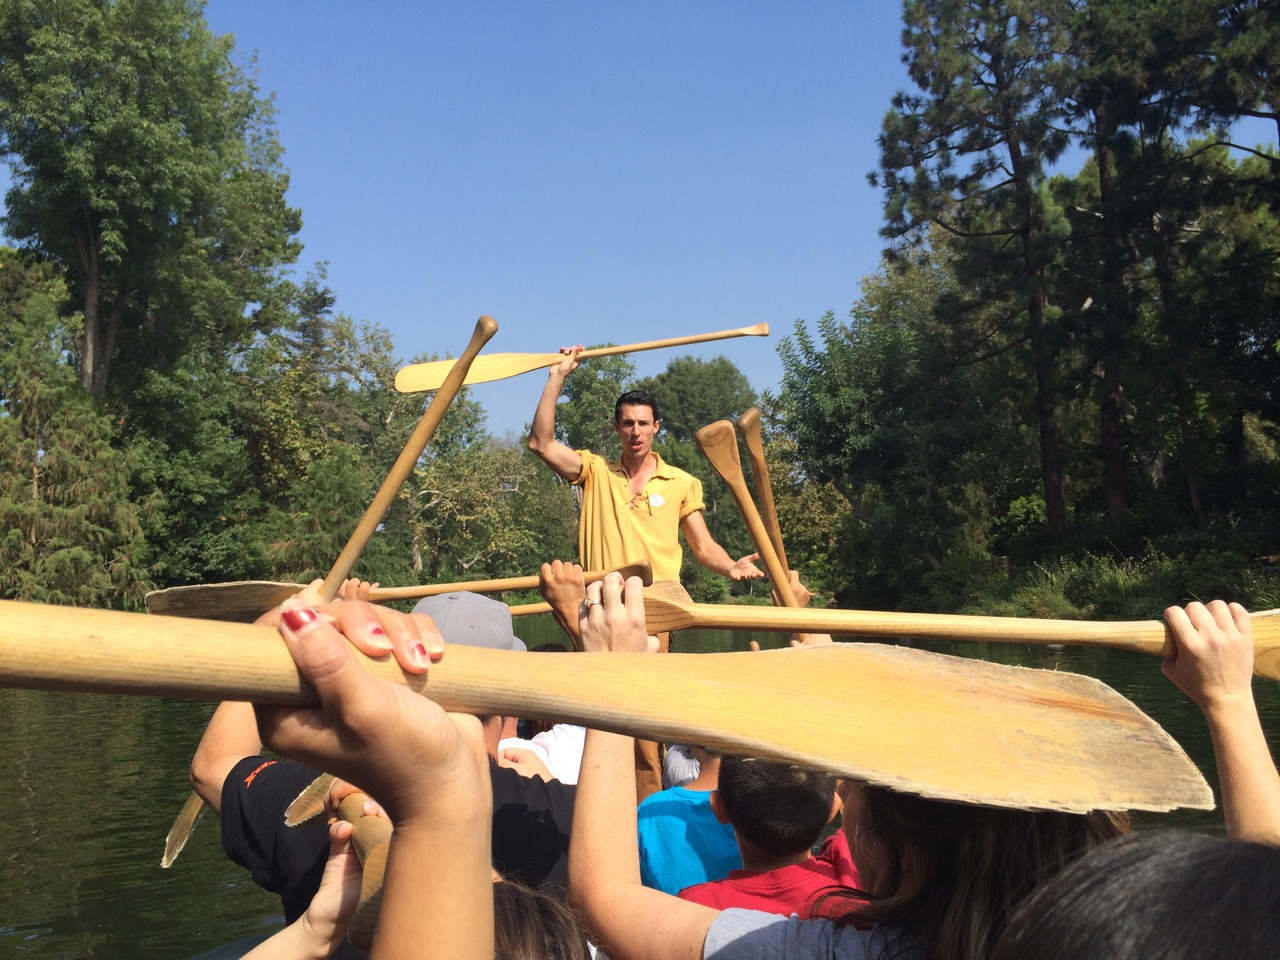 A cast member leads the instruction for canoeing around the Rivers of America at Disneyland. Photo by J. Jeff Kober.